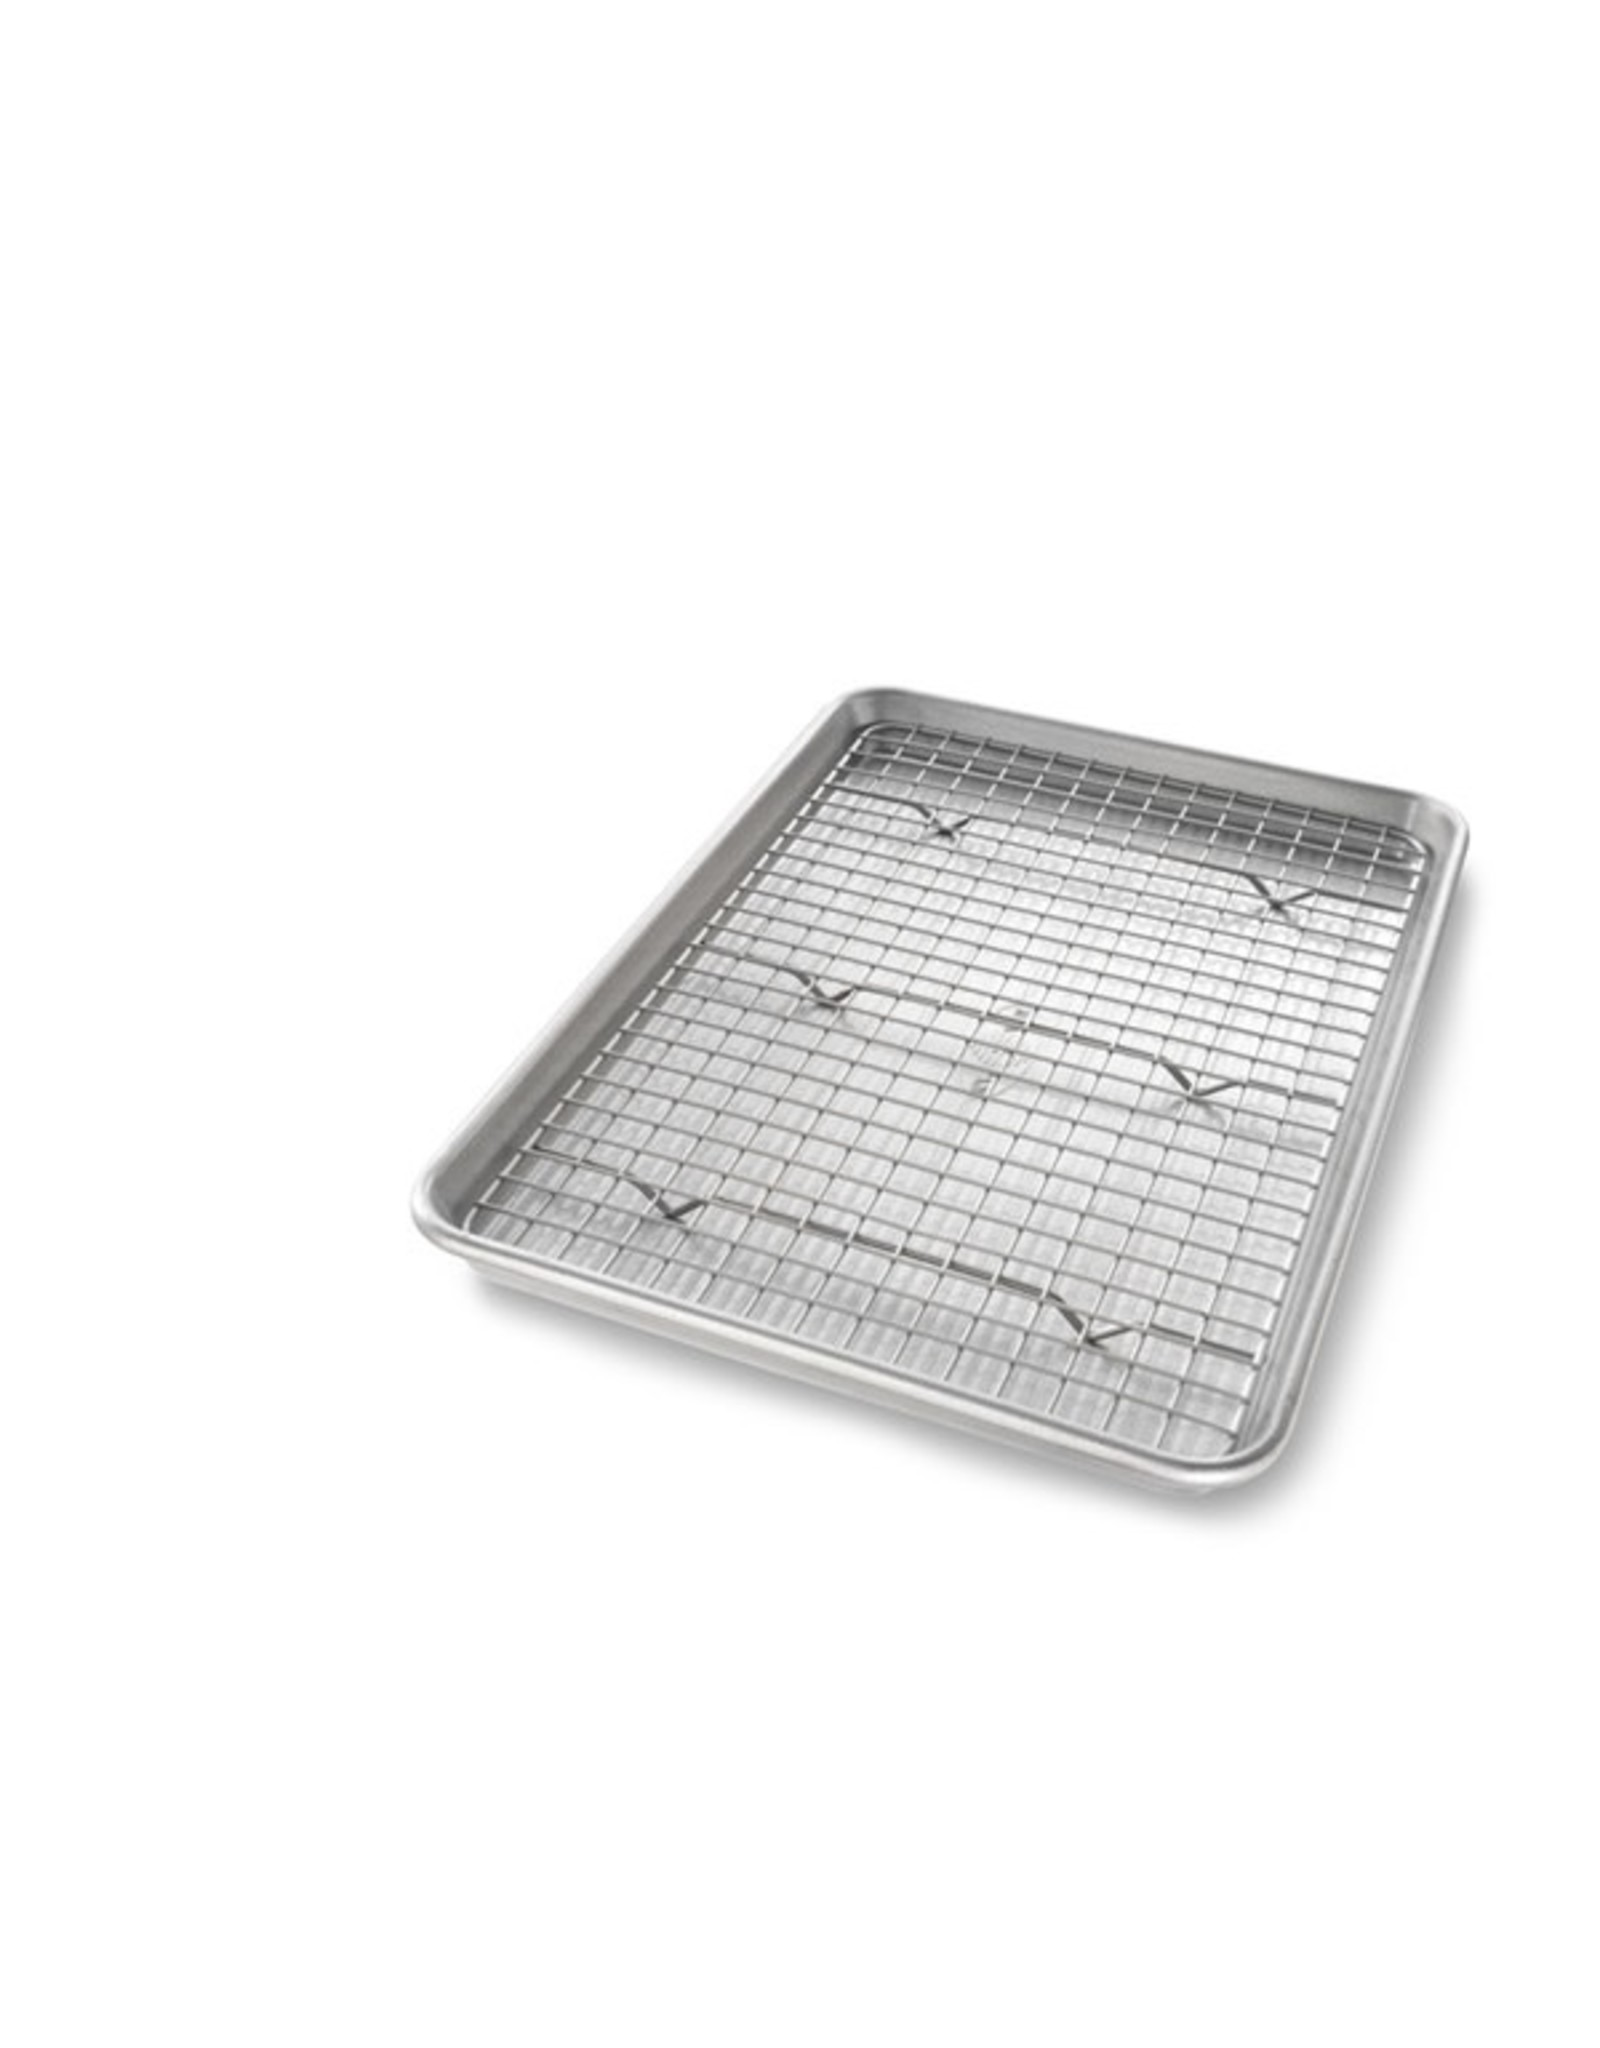 USA Pan Jelly Roll Pan w/Cooling Rack, 9x14